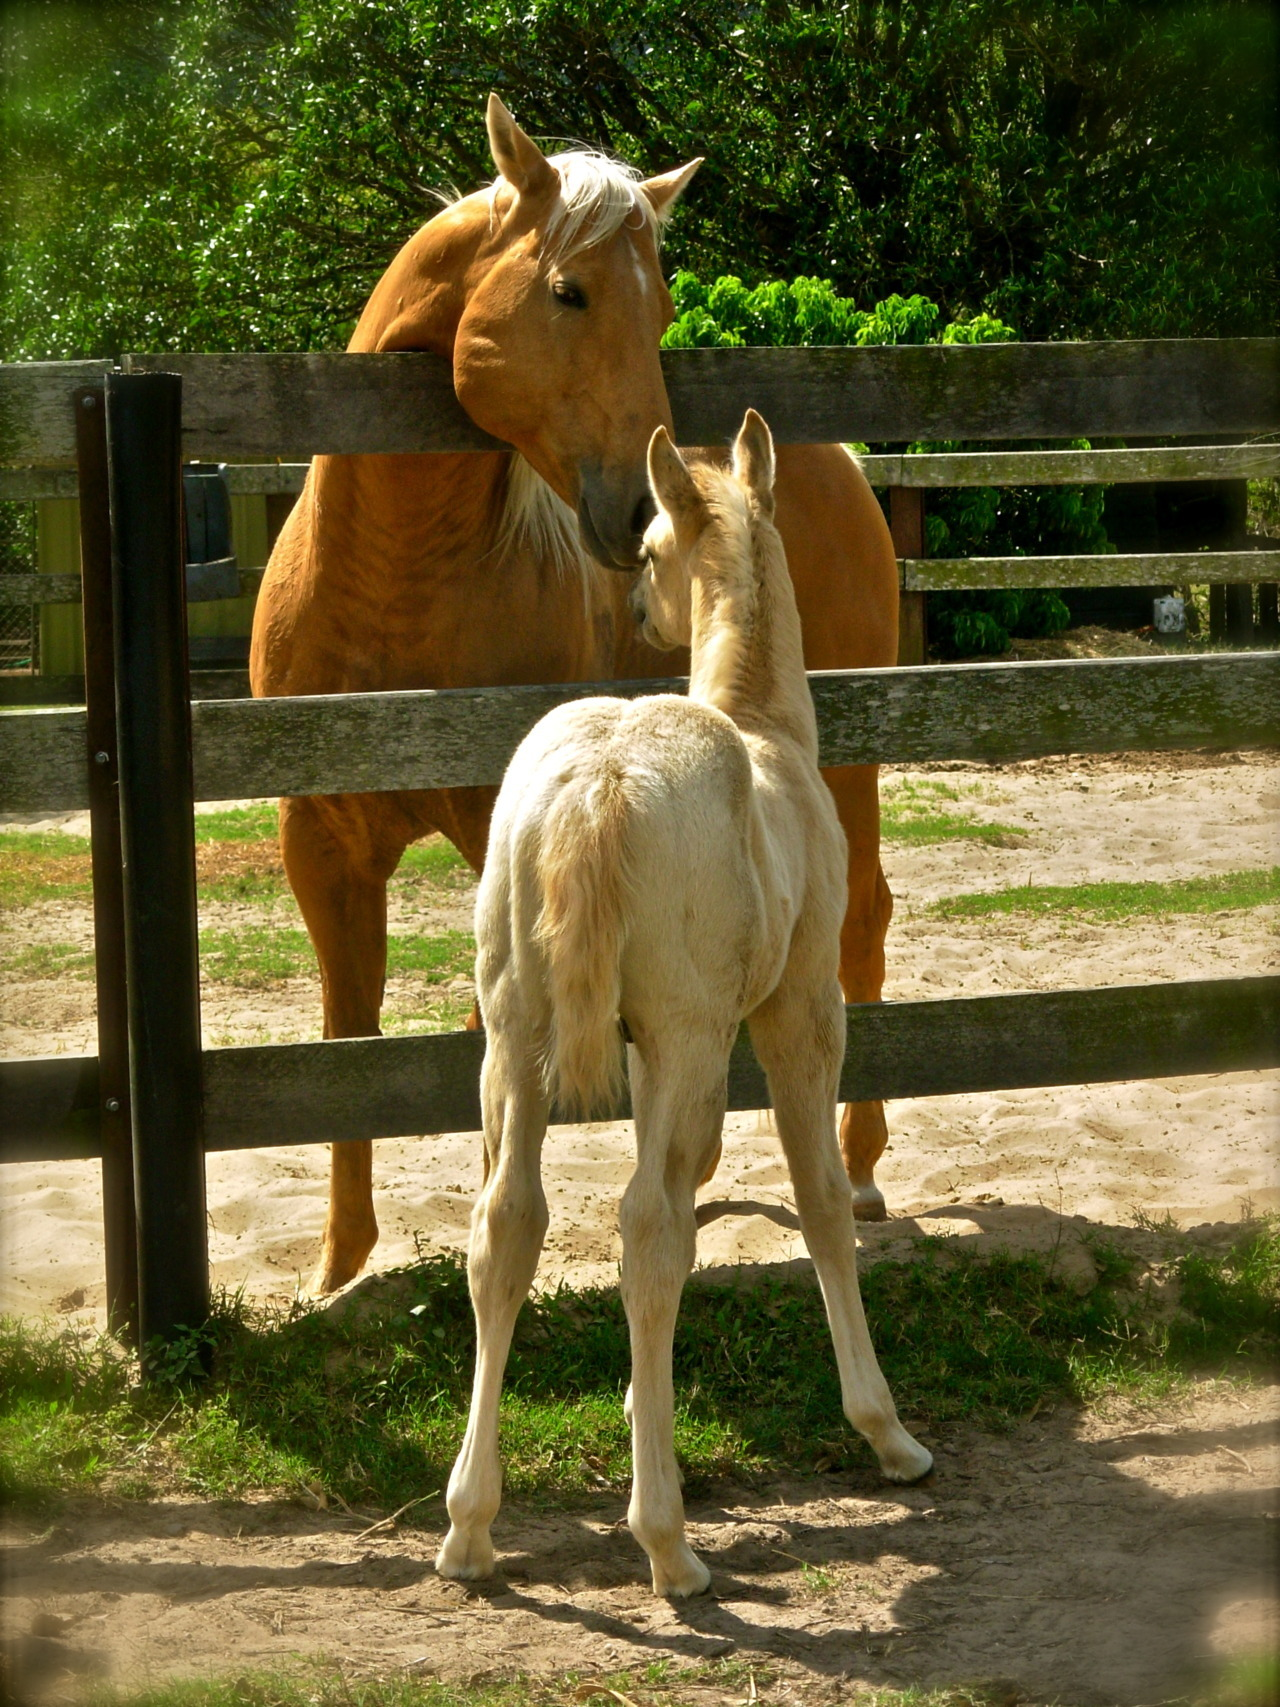 illflyawaywithallmyhorses:  Father and son #2